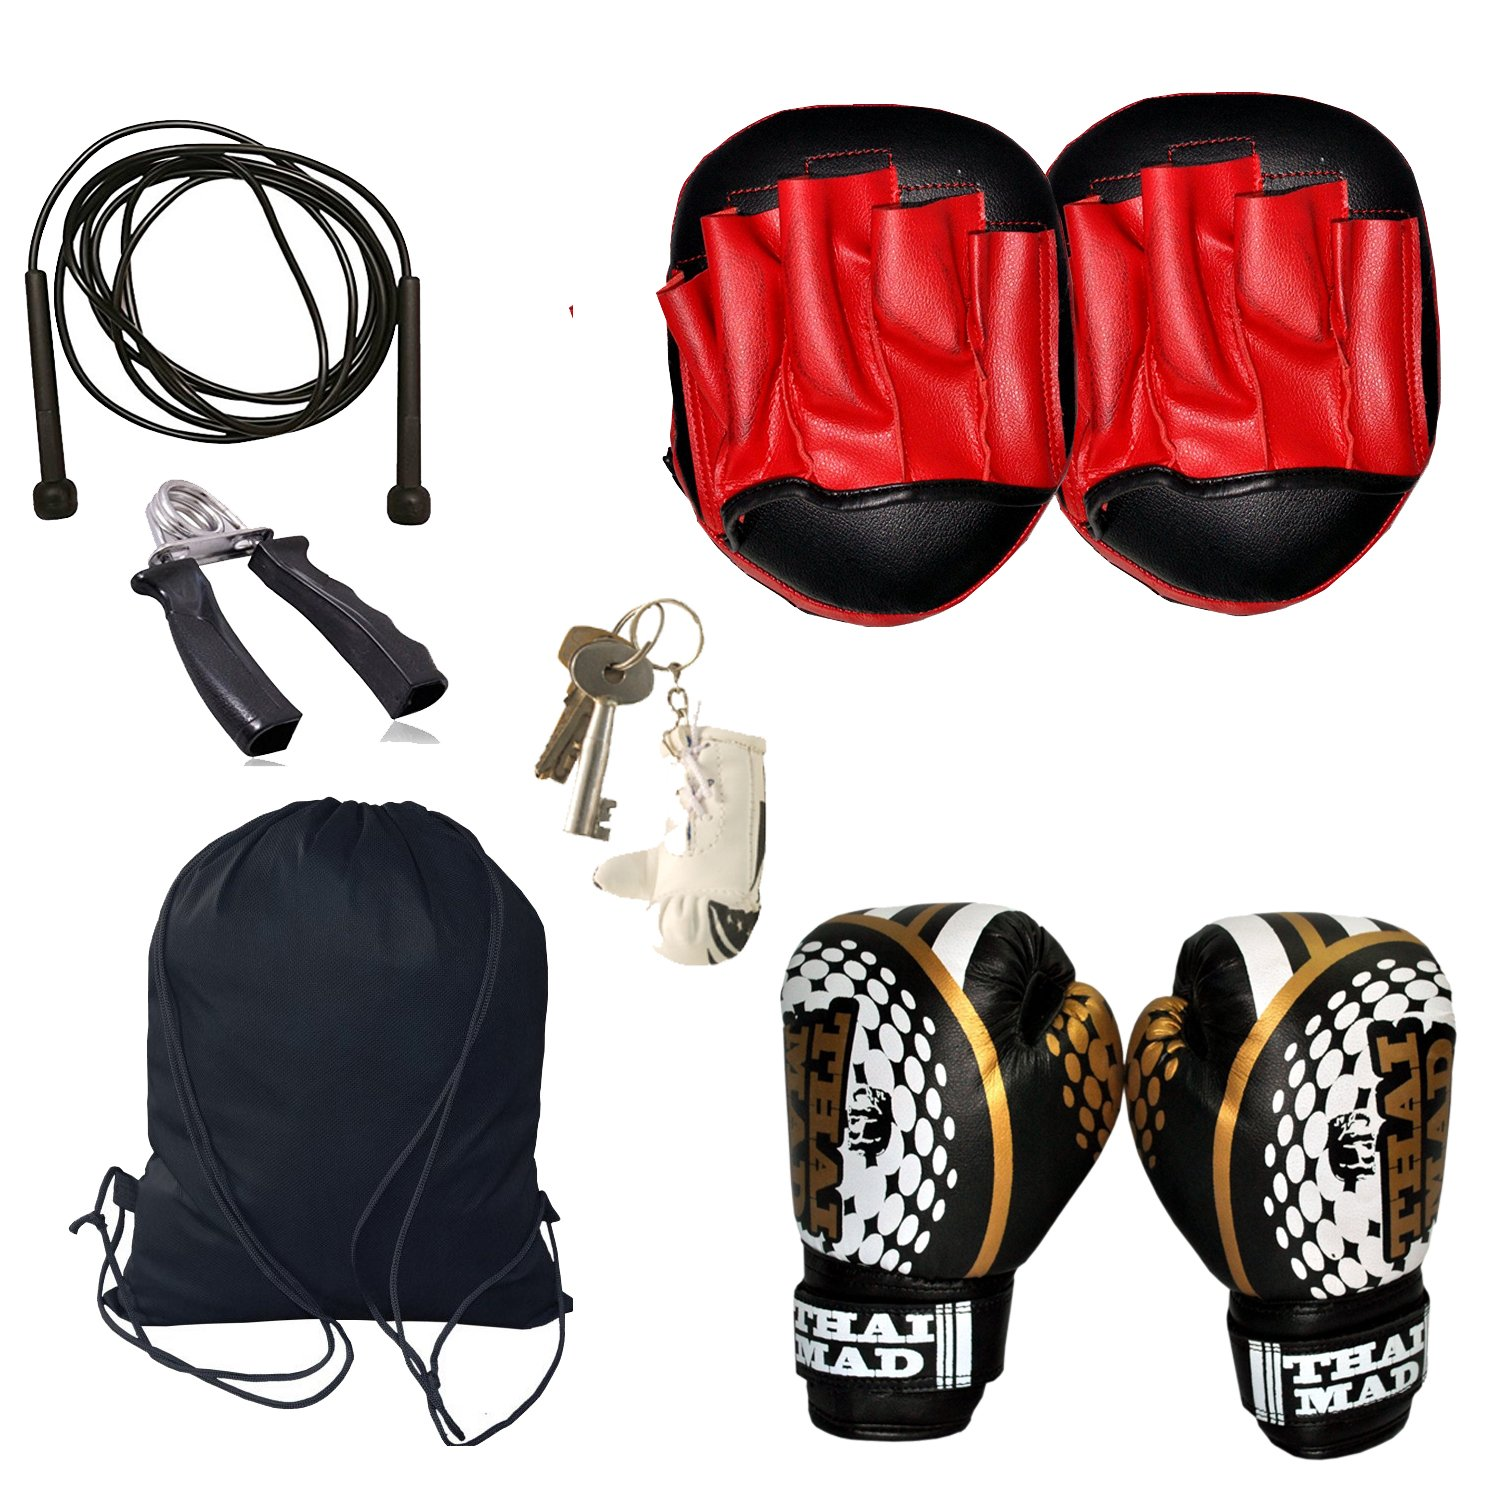 Kids Boxing Set,Focus Pad(Pair),Bag Mitts,Hang Gripper With free Skipping Rope Gym Equipments Onex